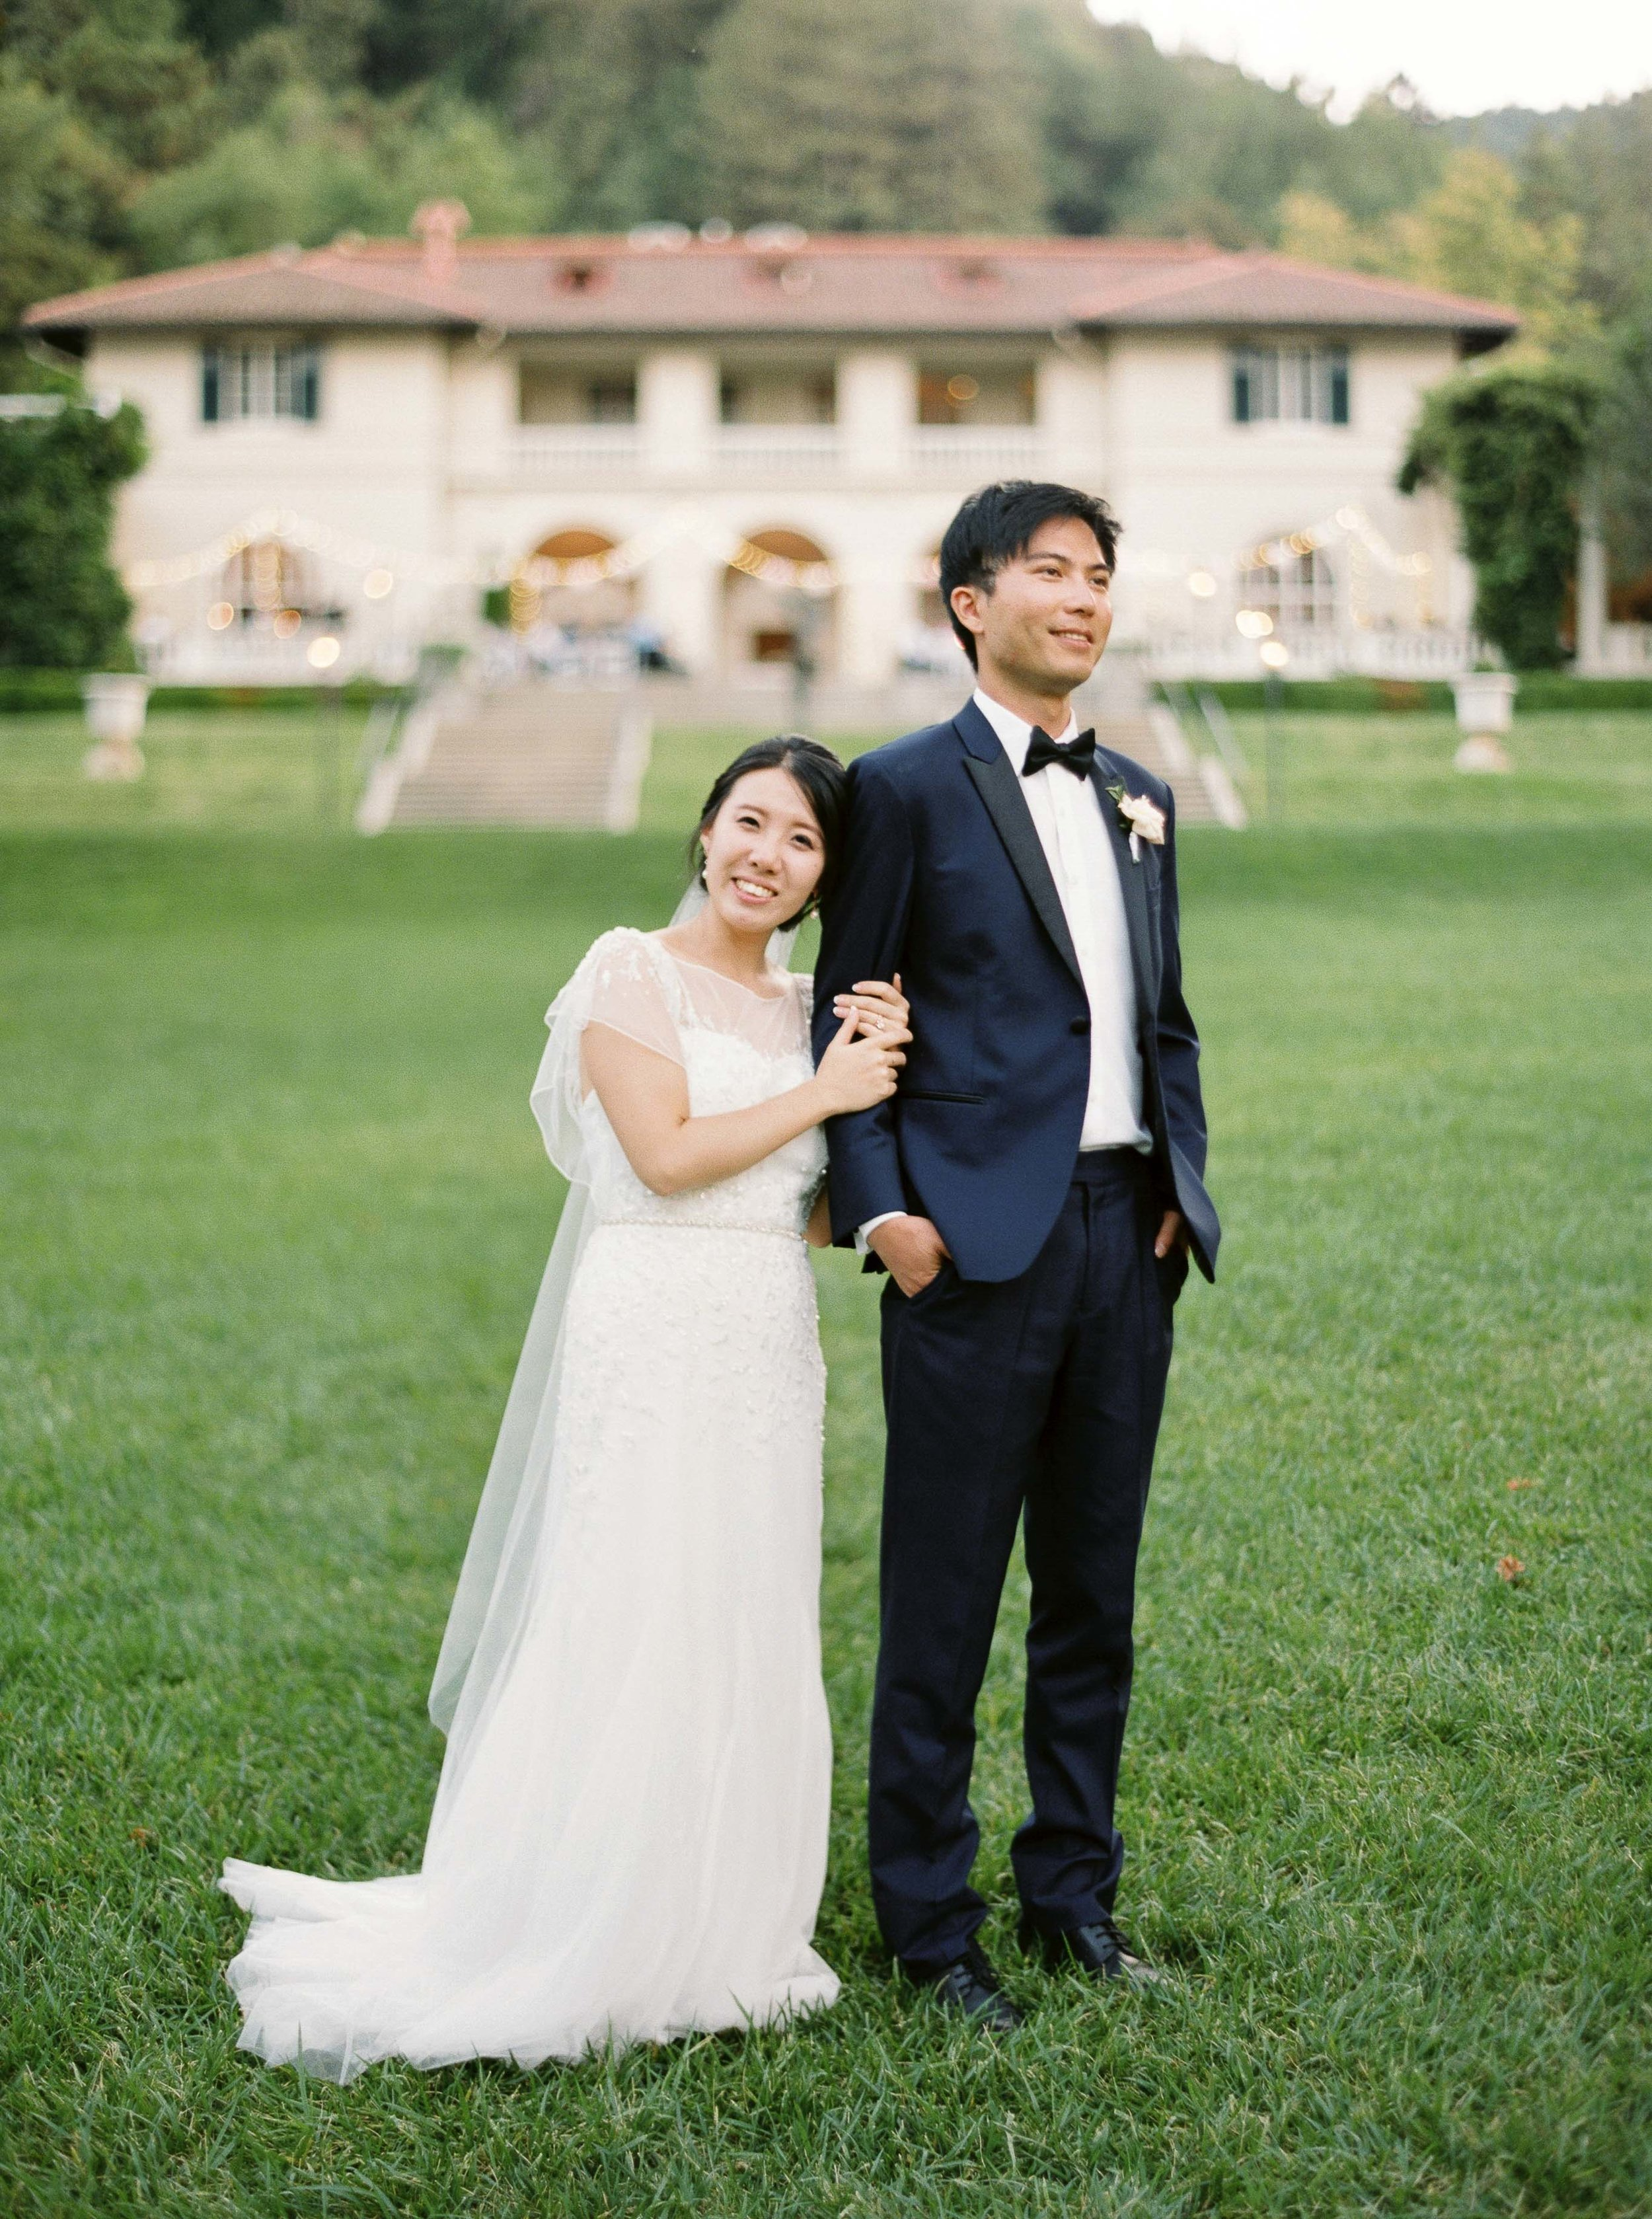 Villa_Montalvo_Wedding_Photographer_Videographer_San_Francisco194.jpg